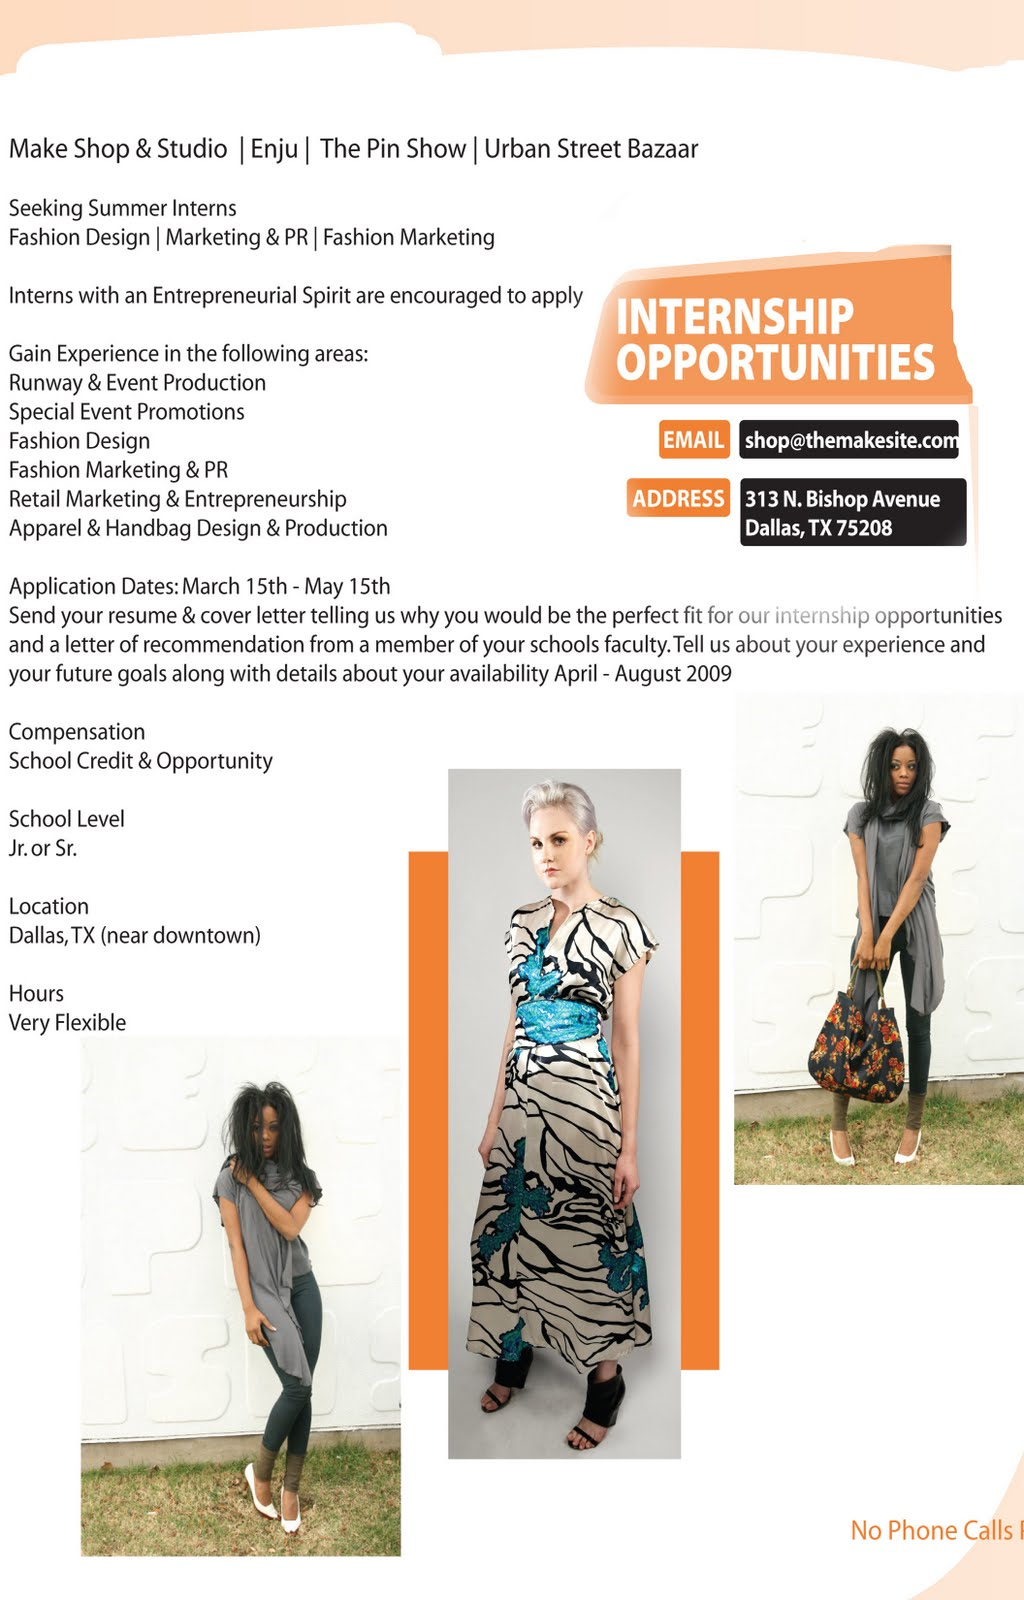 Fashion Design Blog Internship Opportunities